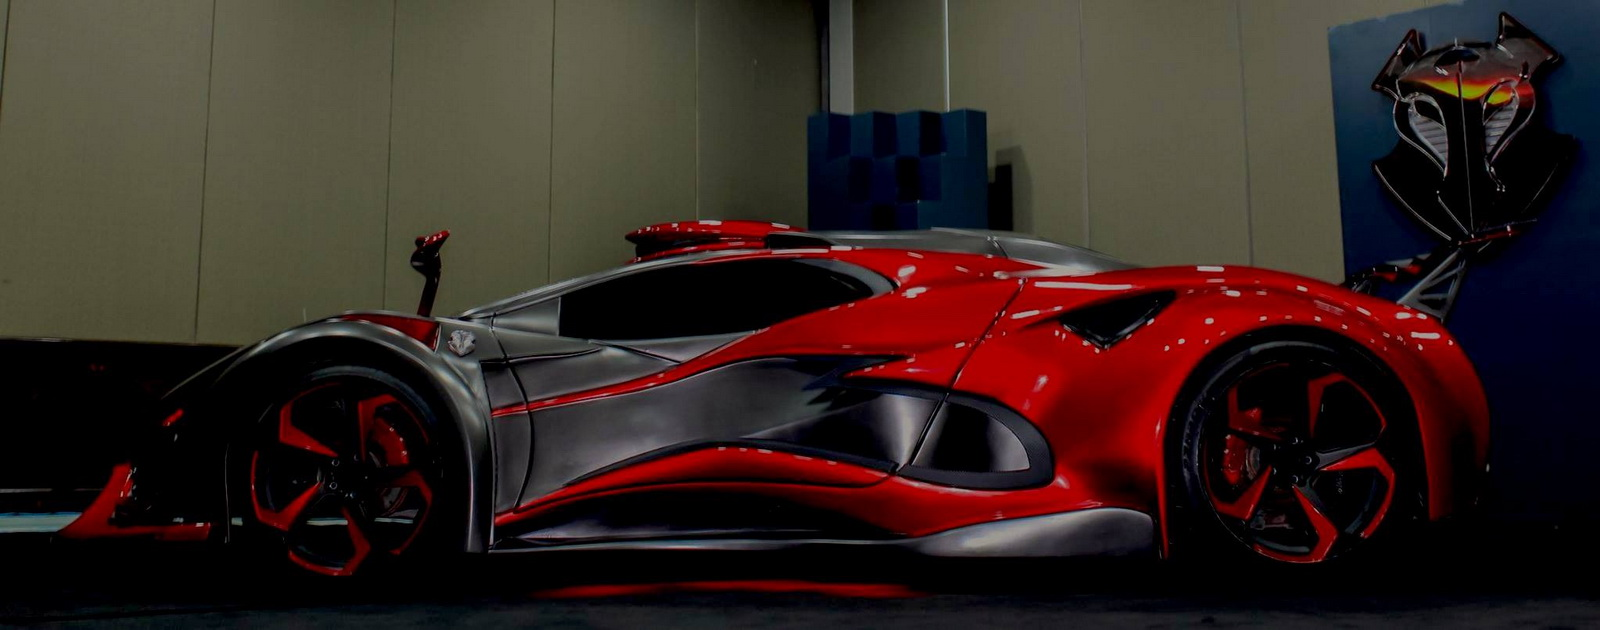 Inferno Exotic Car 2017 >> Mexico S Inferno Exotic Car Looks Absolutely Demonic